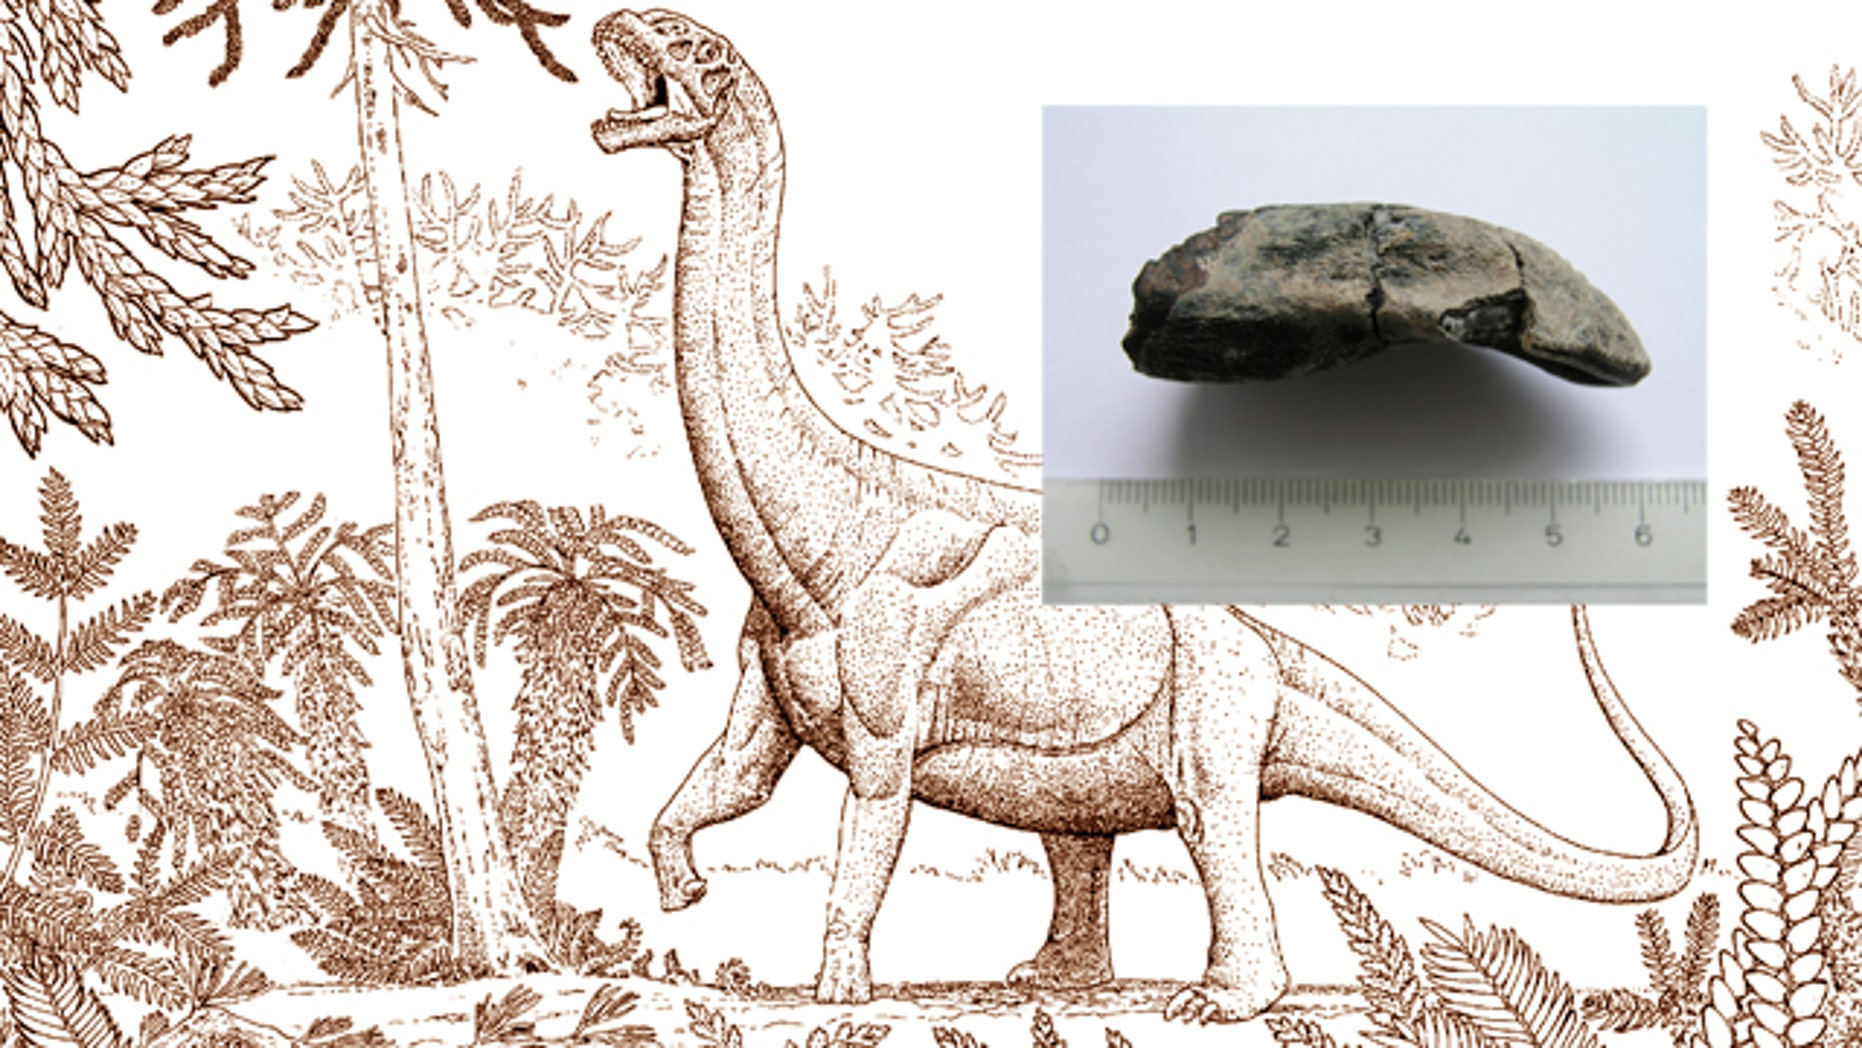 Scientists have figured out a way to take the temperature of dinosaurs, and it turns out to be almost the same as ours. Of course you can't just stick a thermometer under the tongue of a room-sized creature that's been extinct for millions of years. So they did the next best thing, they studied dinosaur teeth.